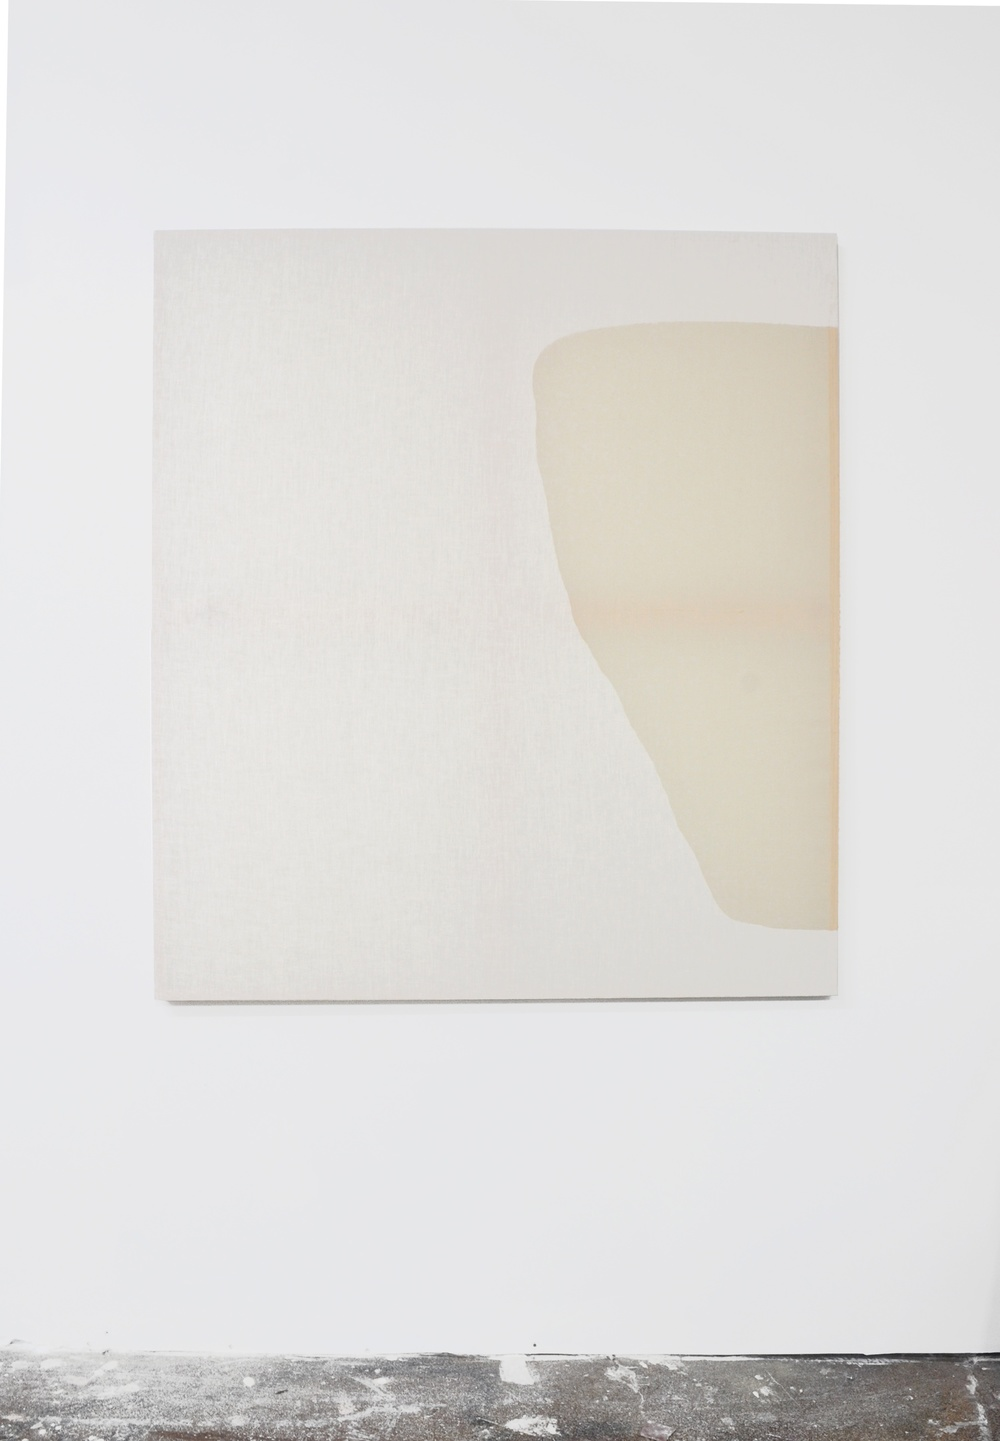 Jessica Sanders  Saturation A65 , 2014 Beeswax on stretched linen 59 ½ x 53 in/ 151.1 x 134.6 cm